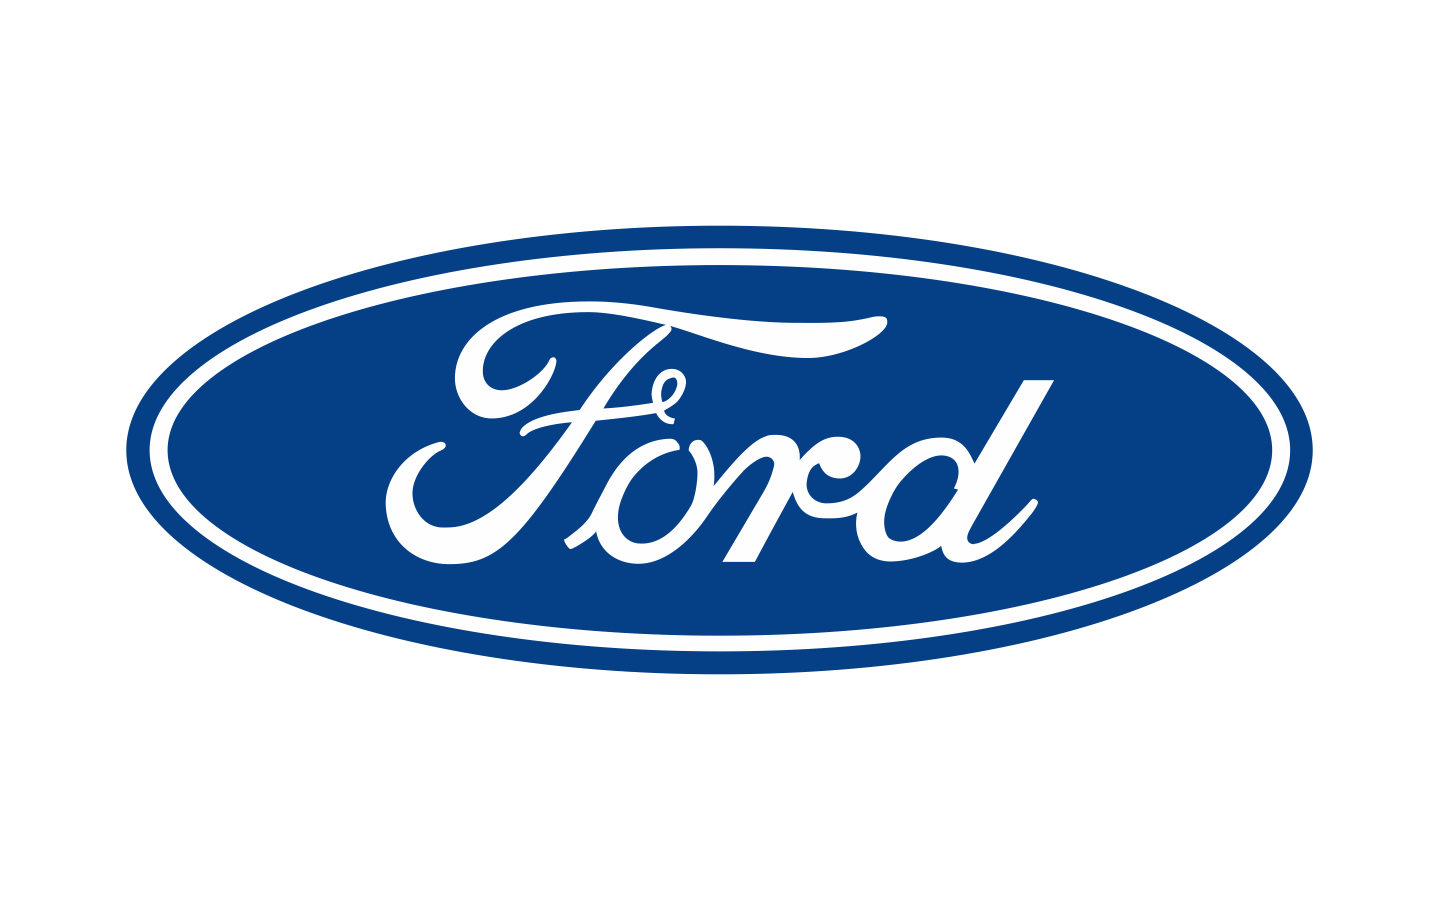 Should Analyst help in decision?: Ford Motor Company (F)